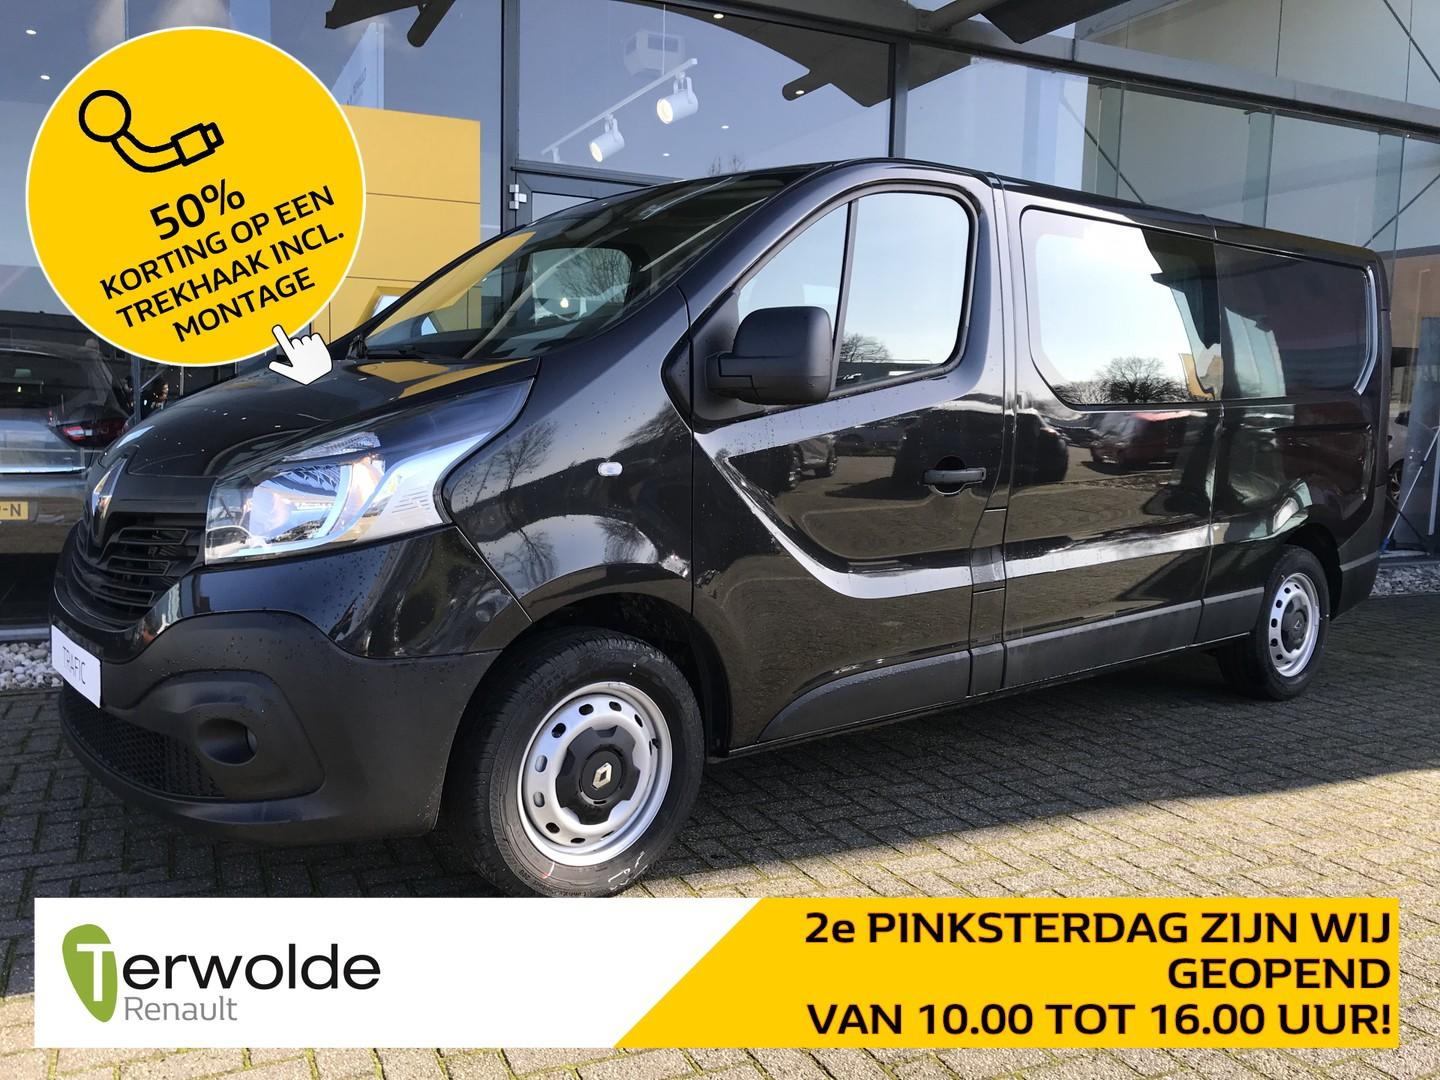 Renault Trafic 1.6 dci t29 l2h1 dubbele cabine comfort inclusief 7.035 euro korting! 6 persoons!